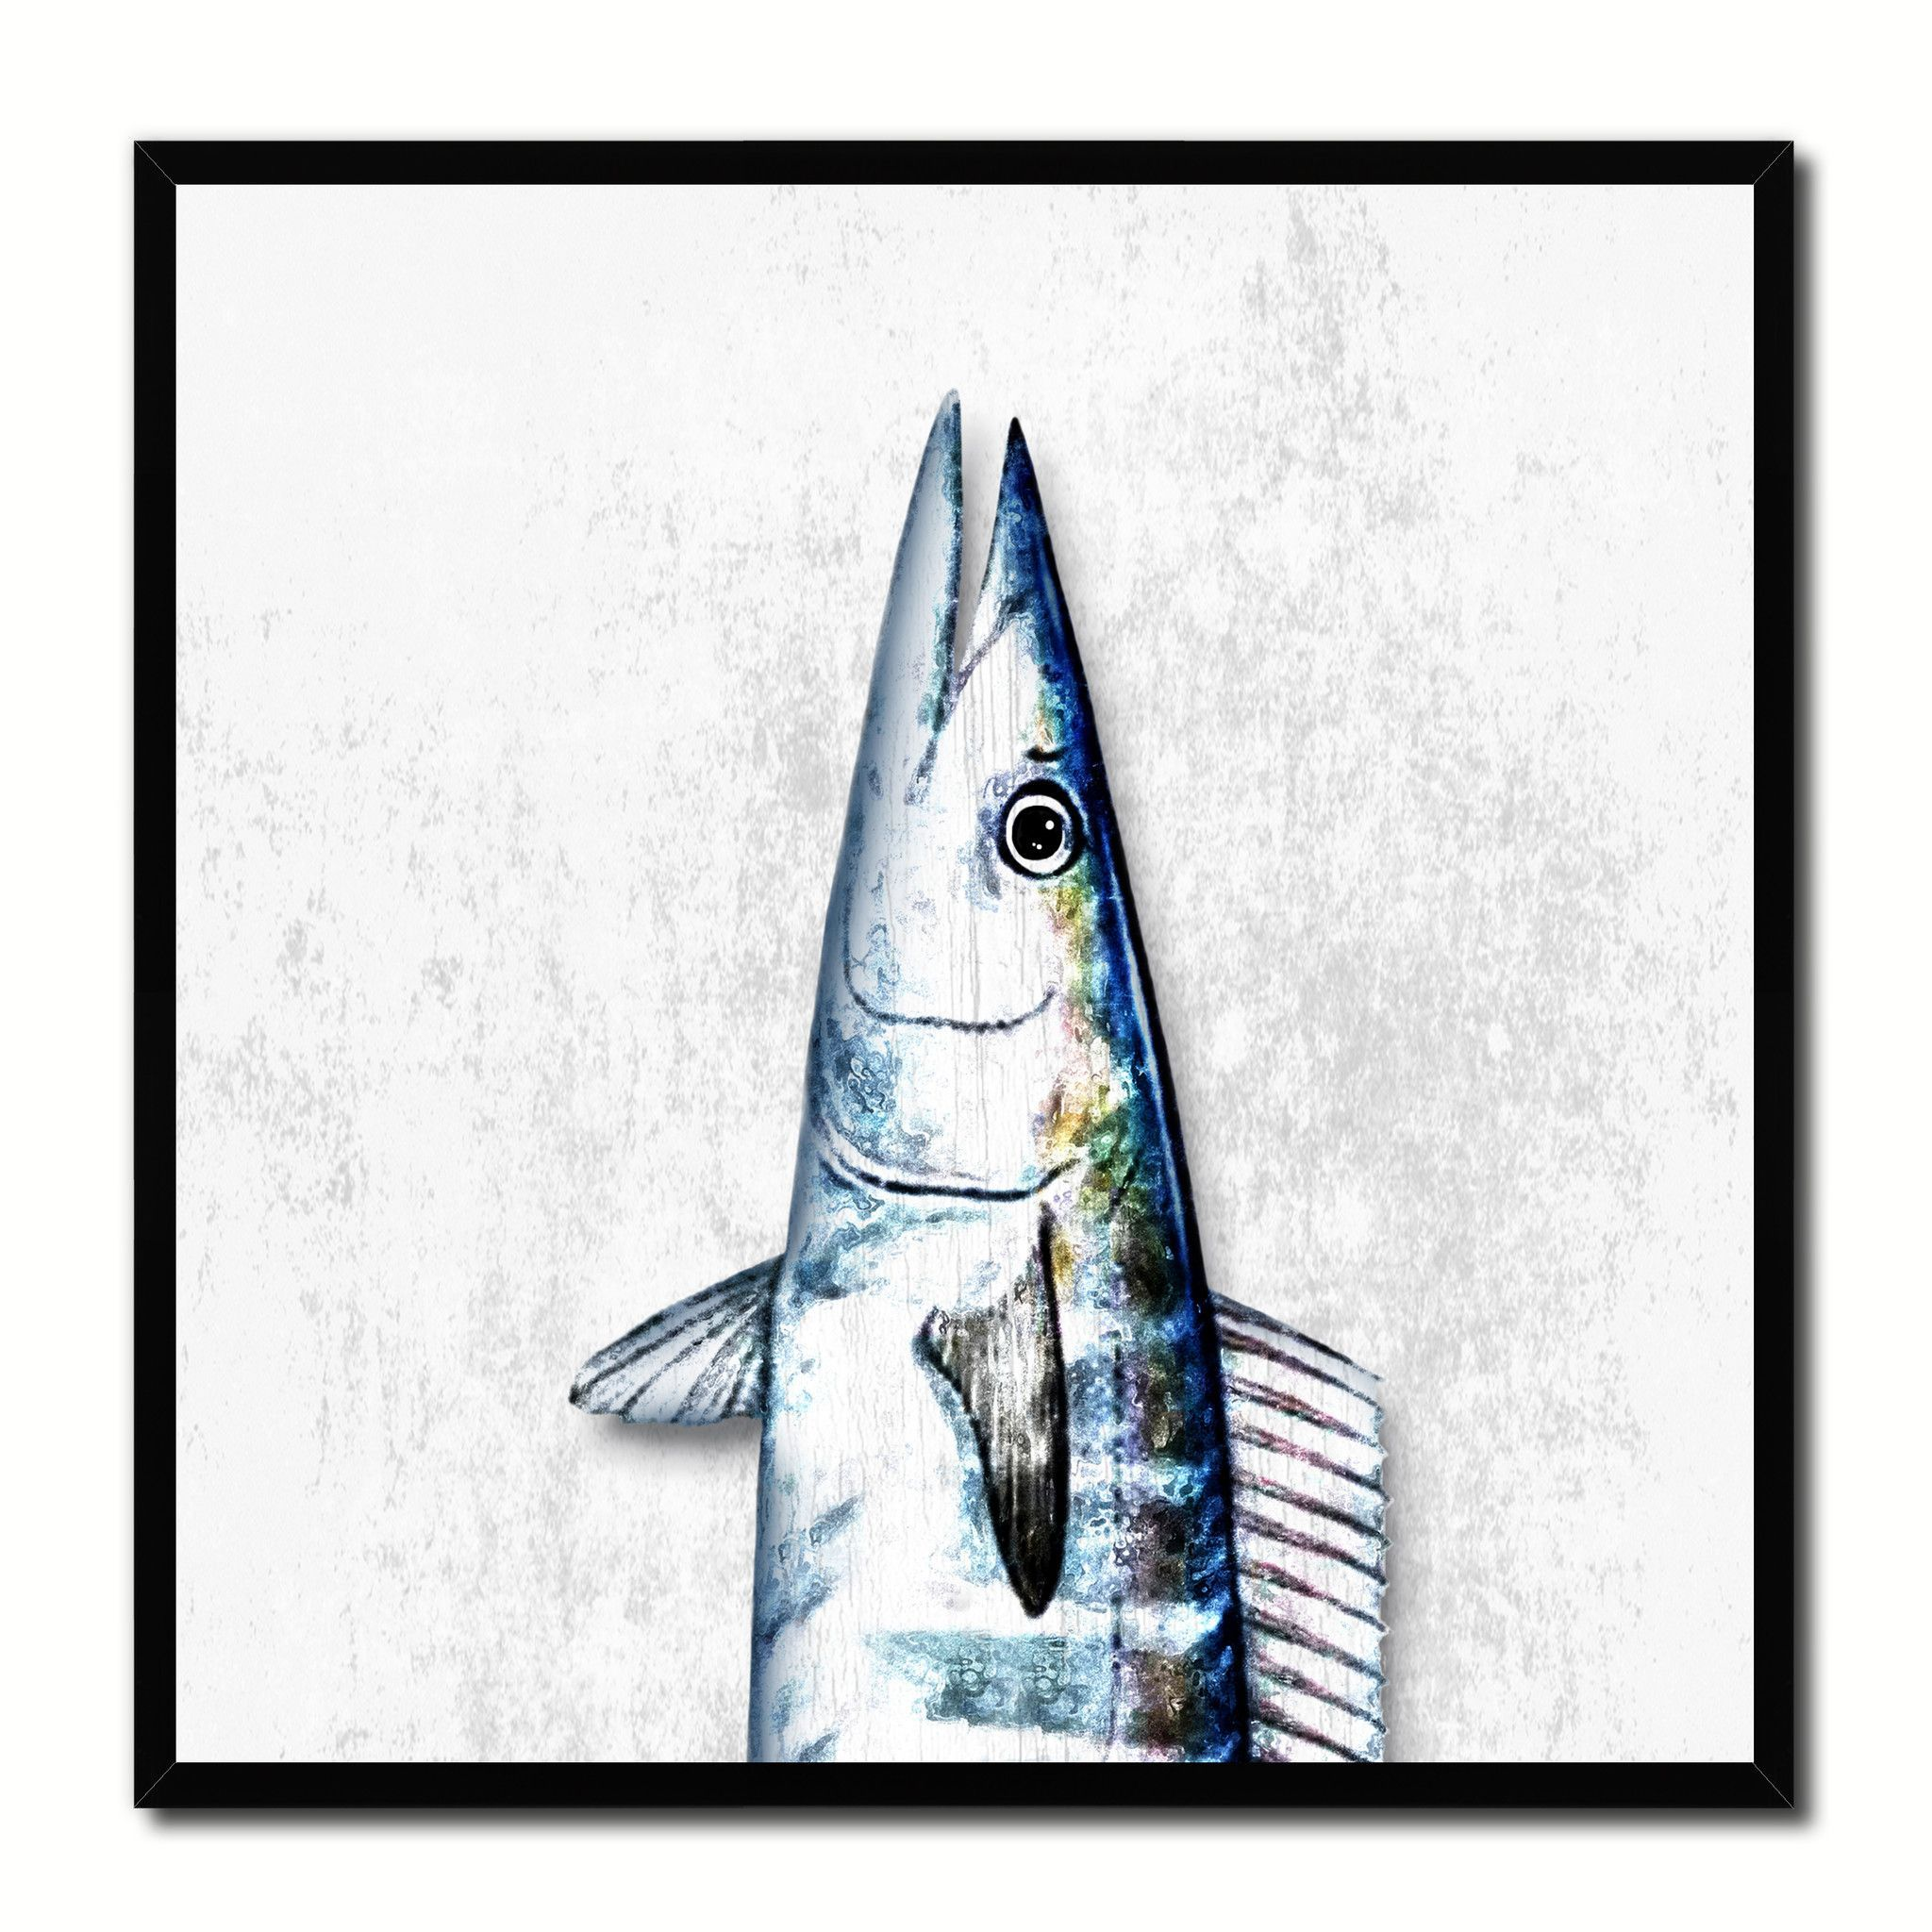 Wahoo Fish Head Art White Canvas Print Picture Frame Wall